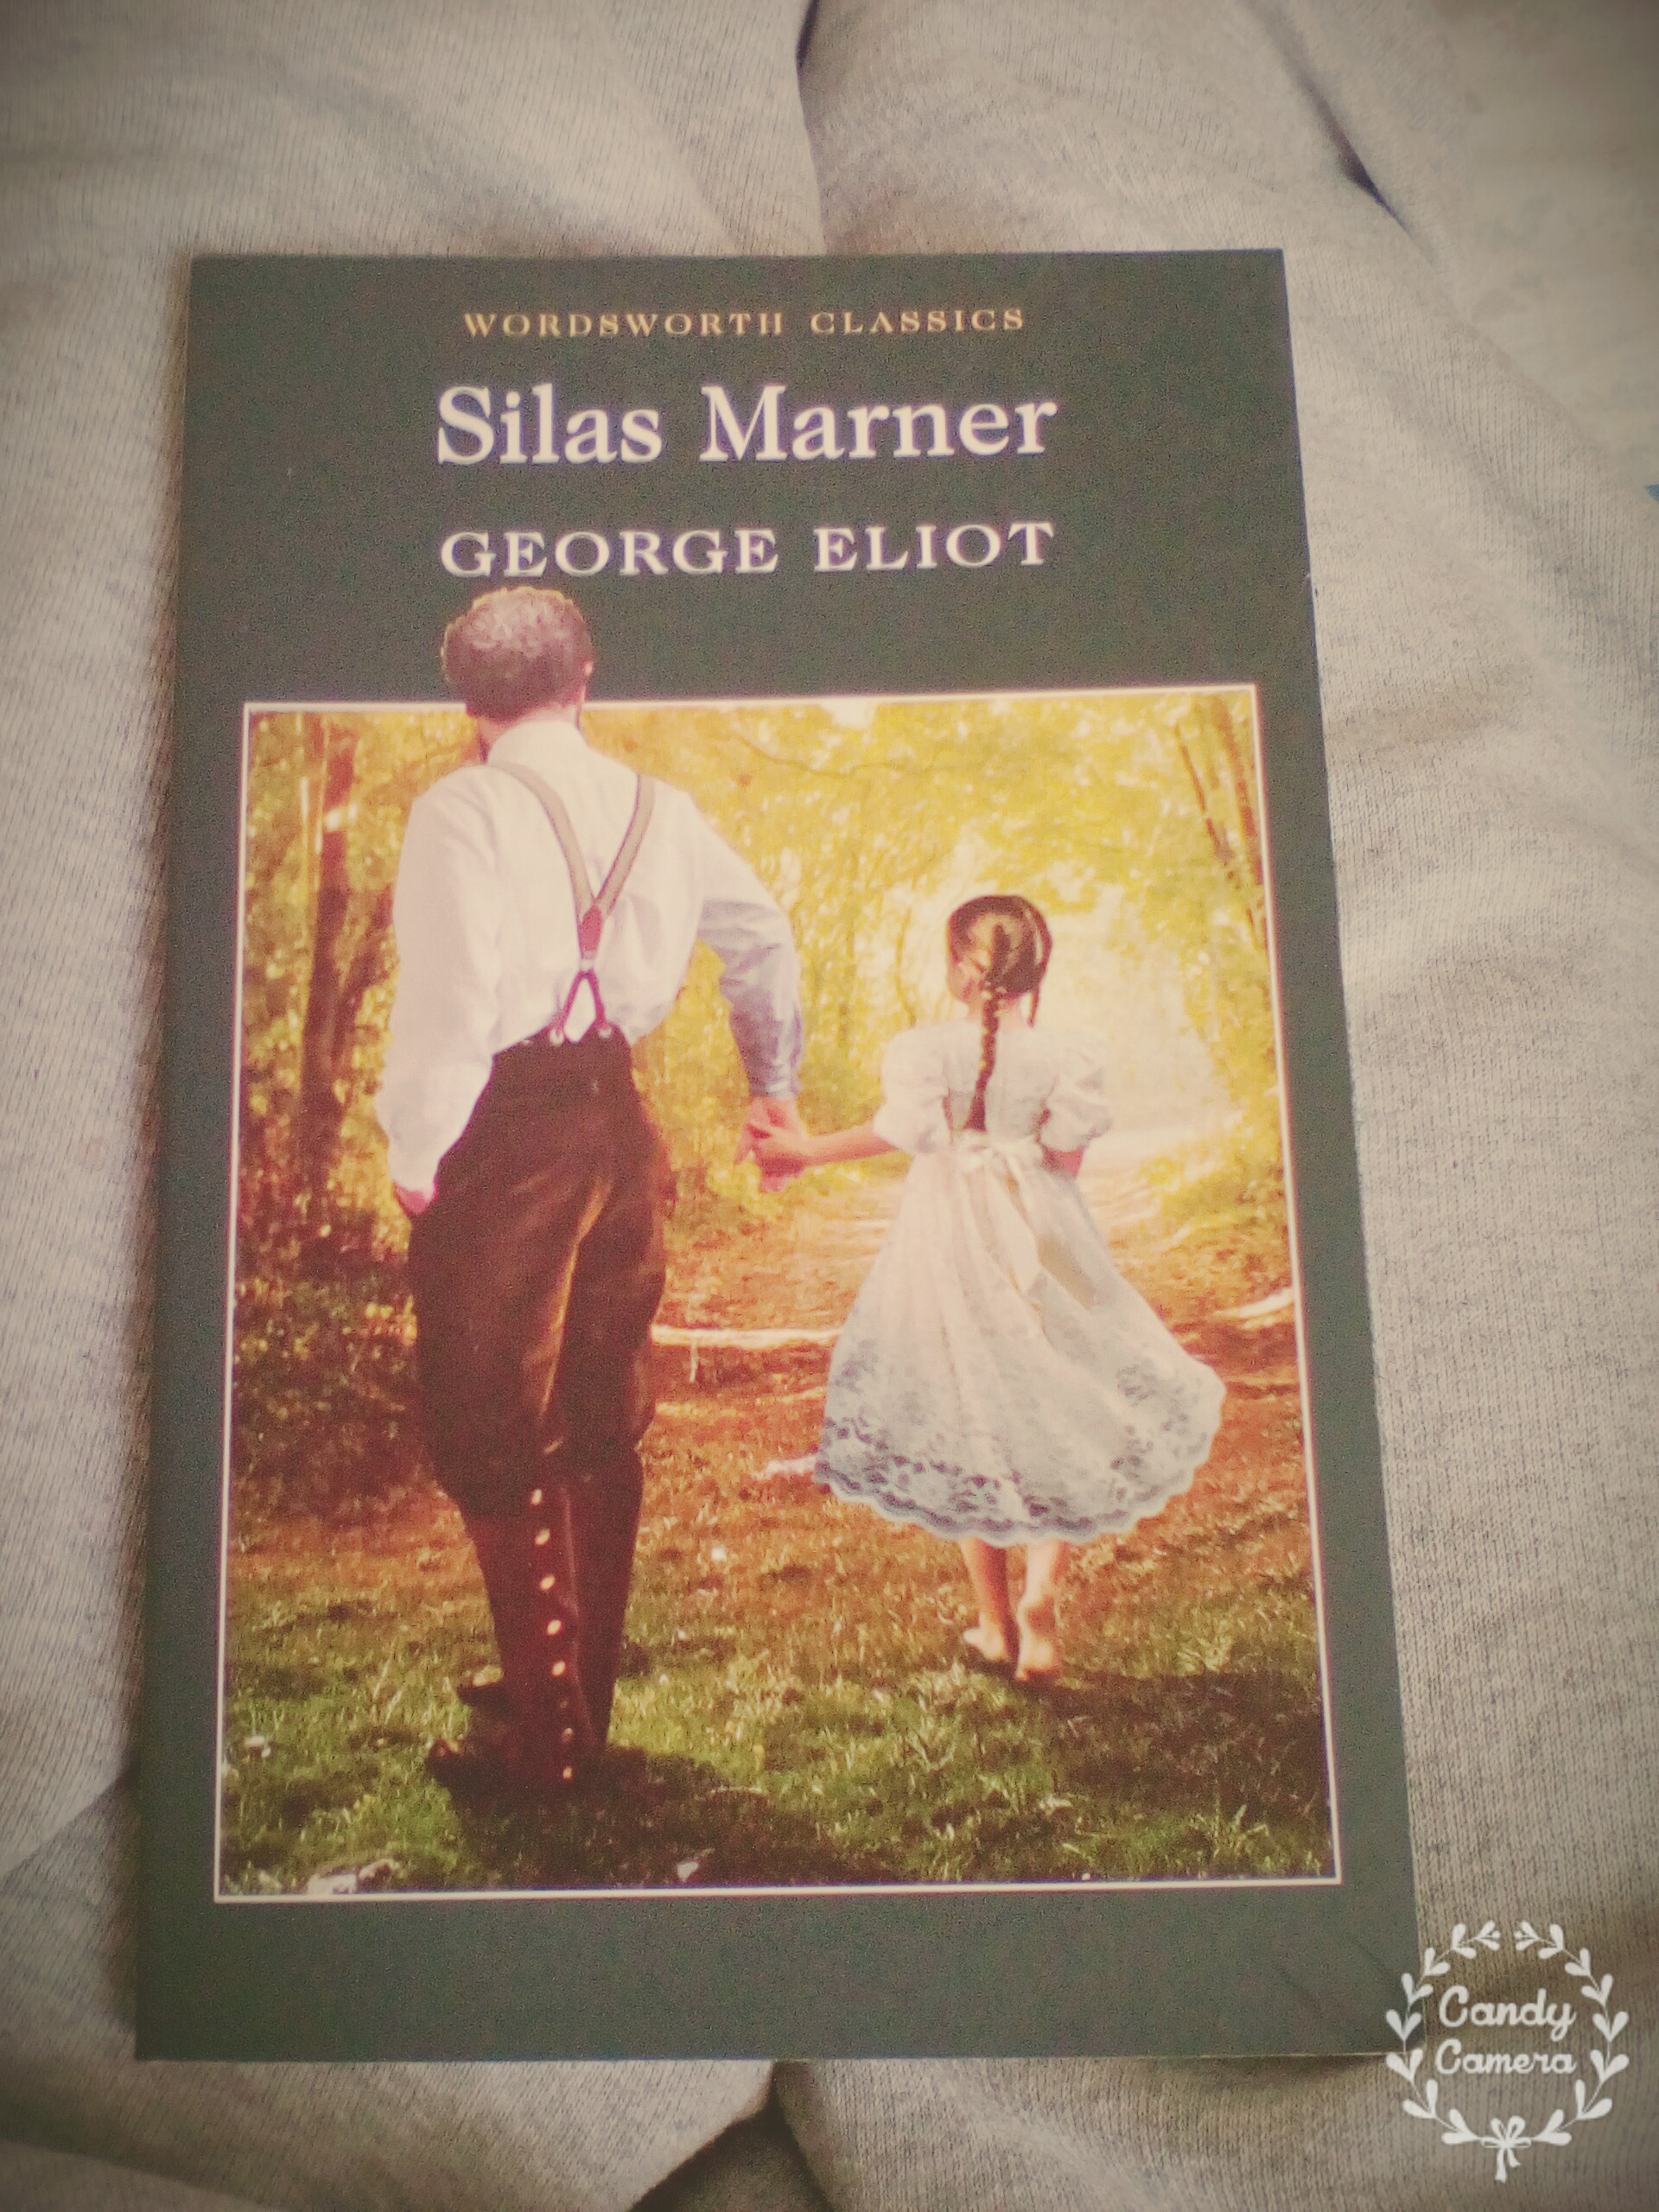 silas marner as the moralistic work of george eliot Miserly weaver silas marner is one of george eliot's greatest creations  otherworldly glow over the moral dramas  like all of eliot's best work.